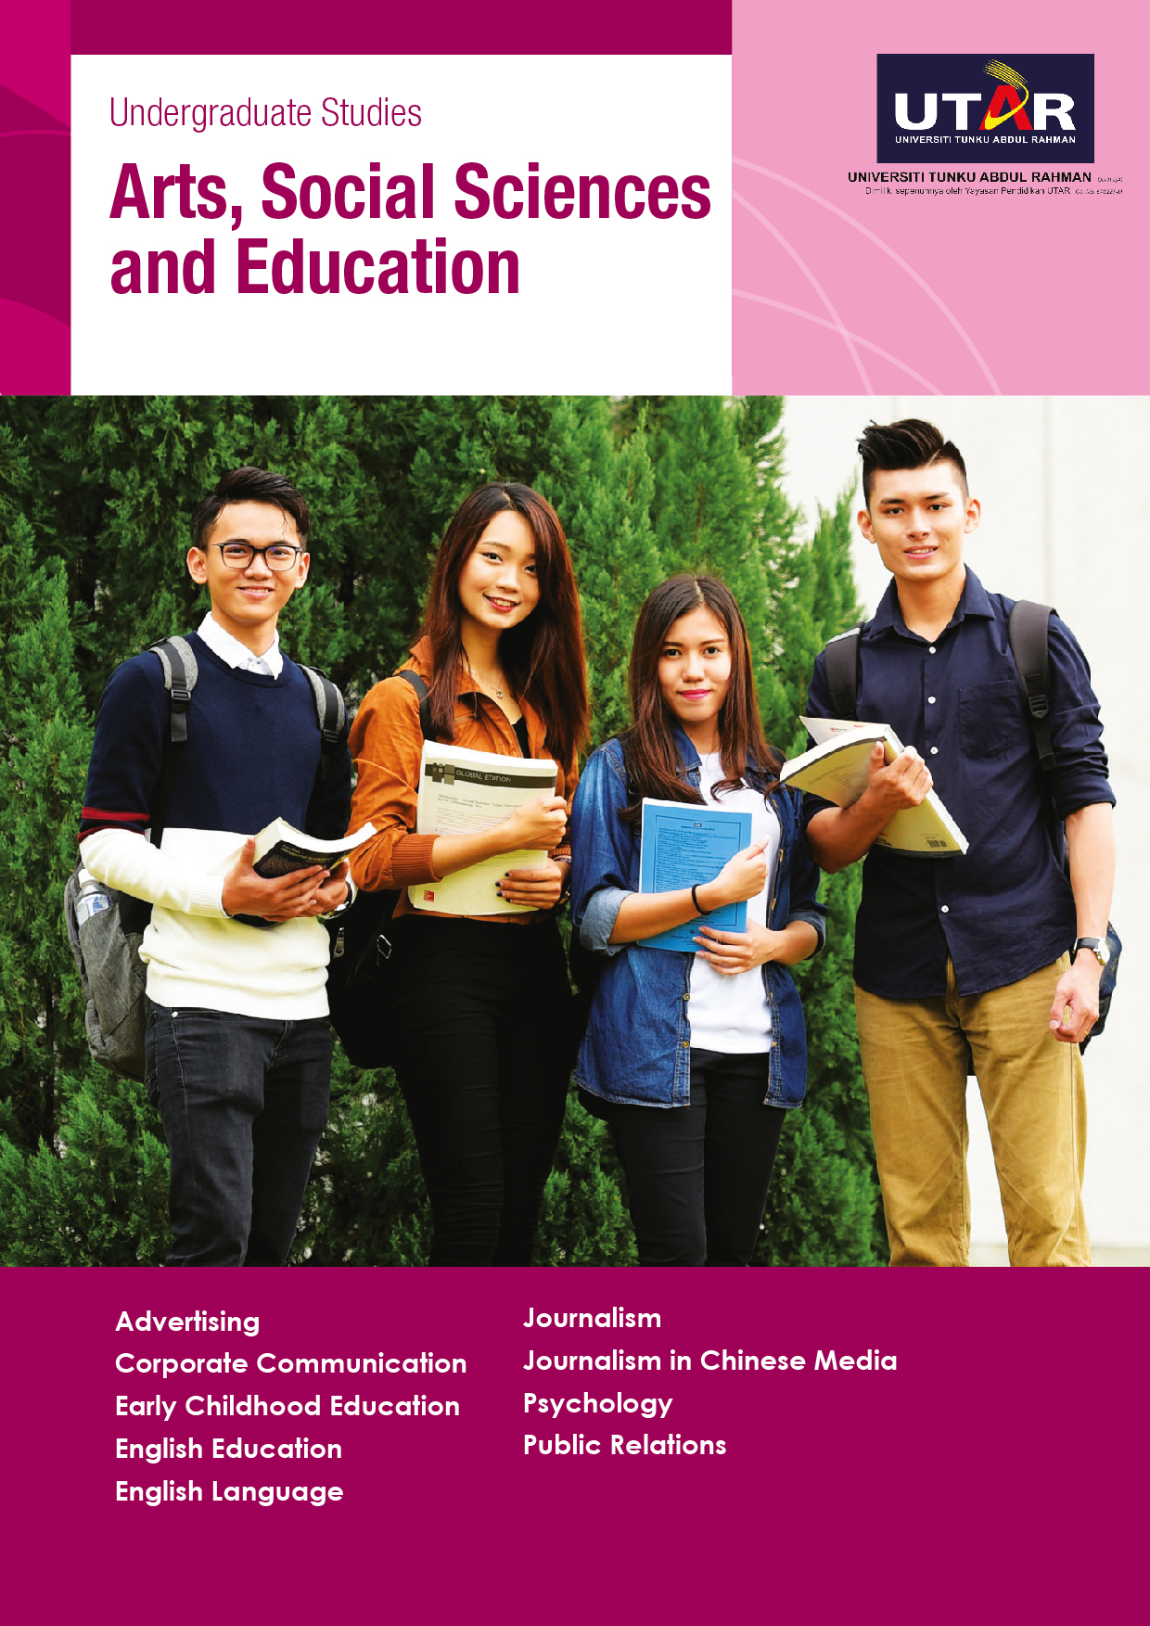 career prospects in arts, social sciences and education pg1